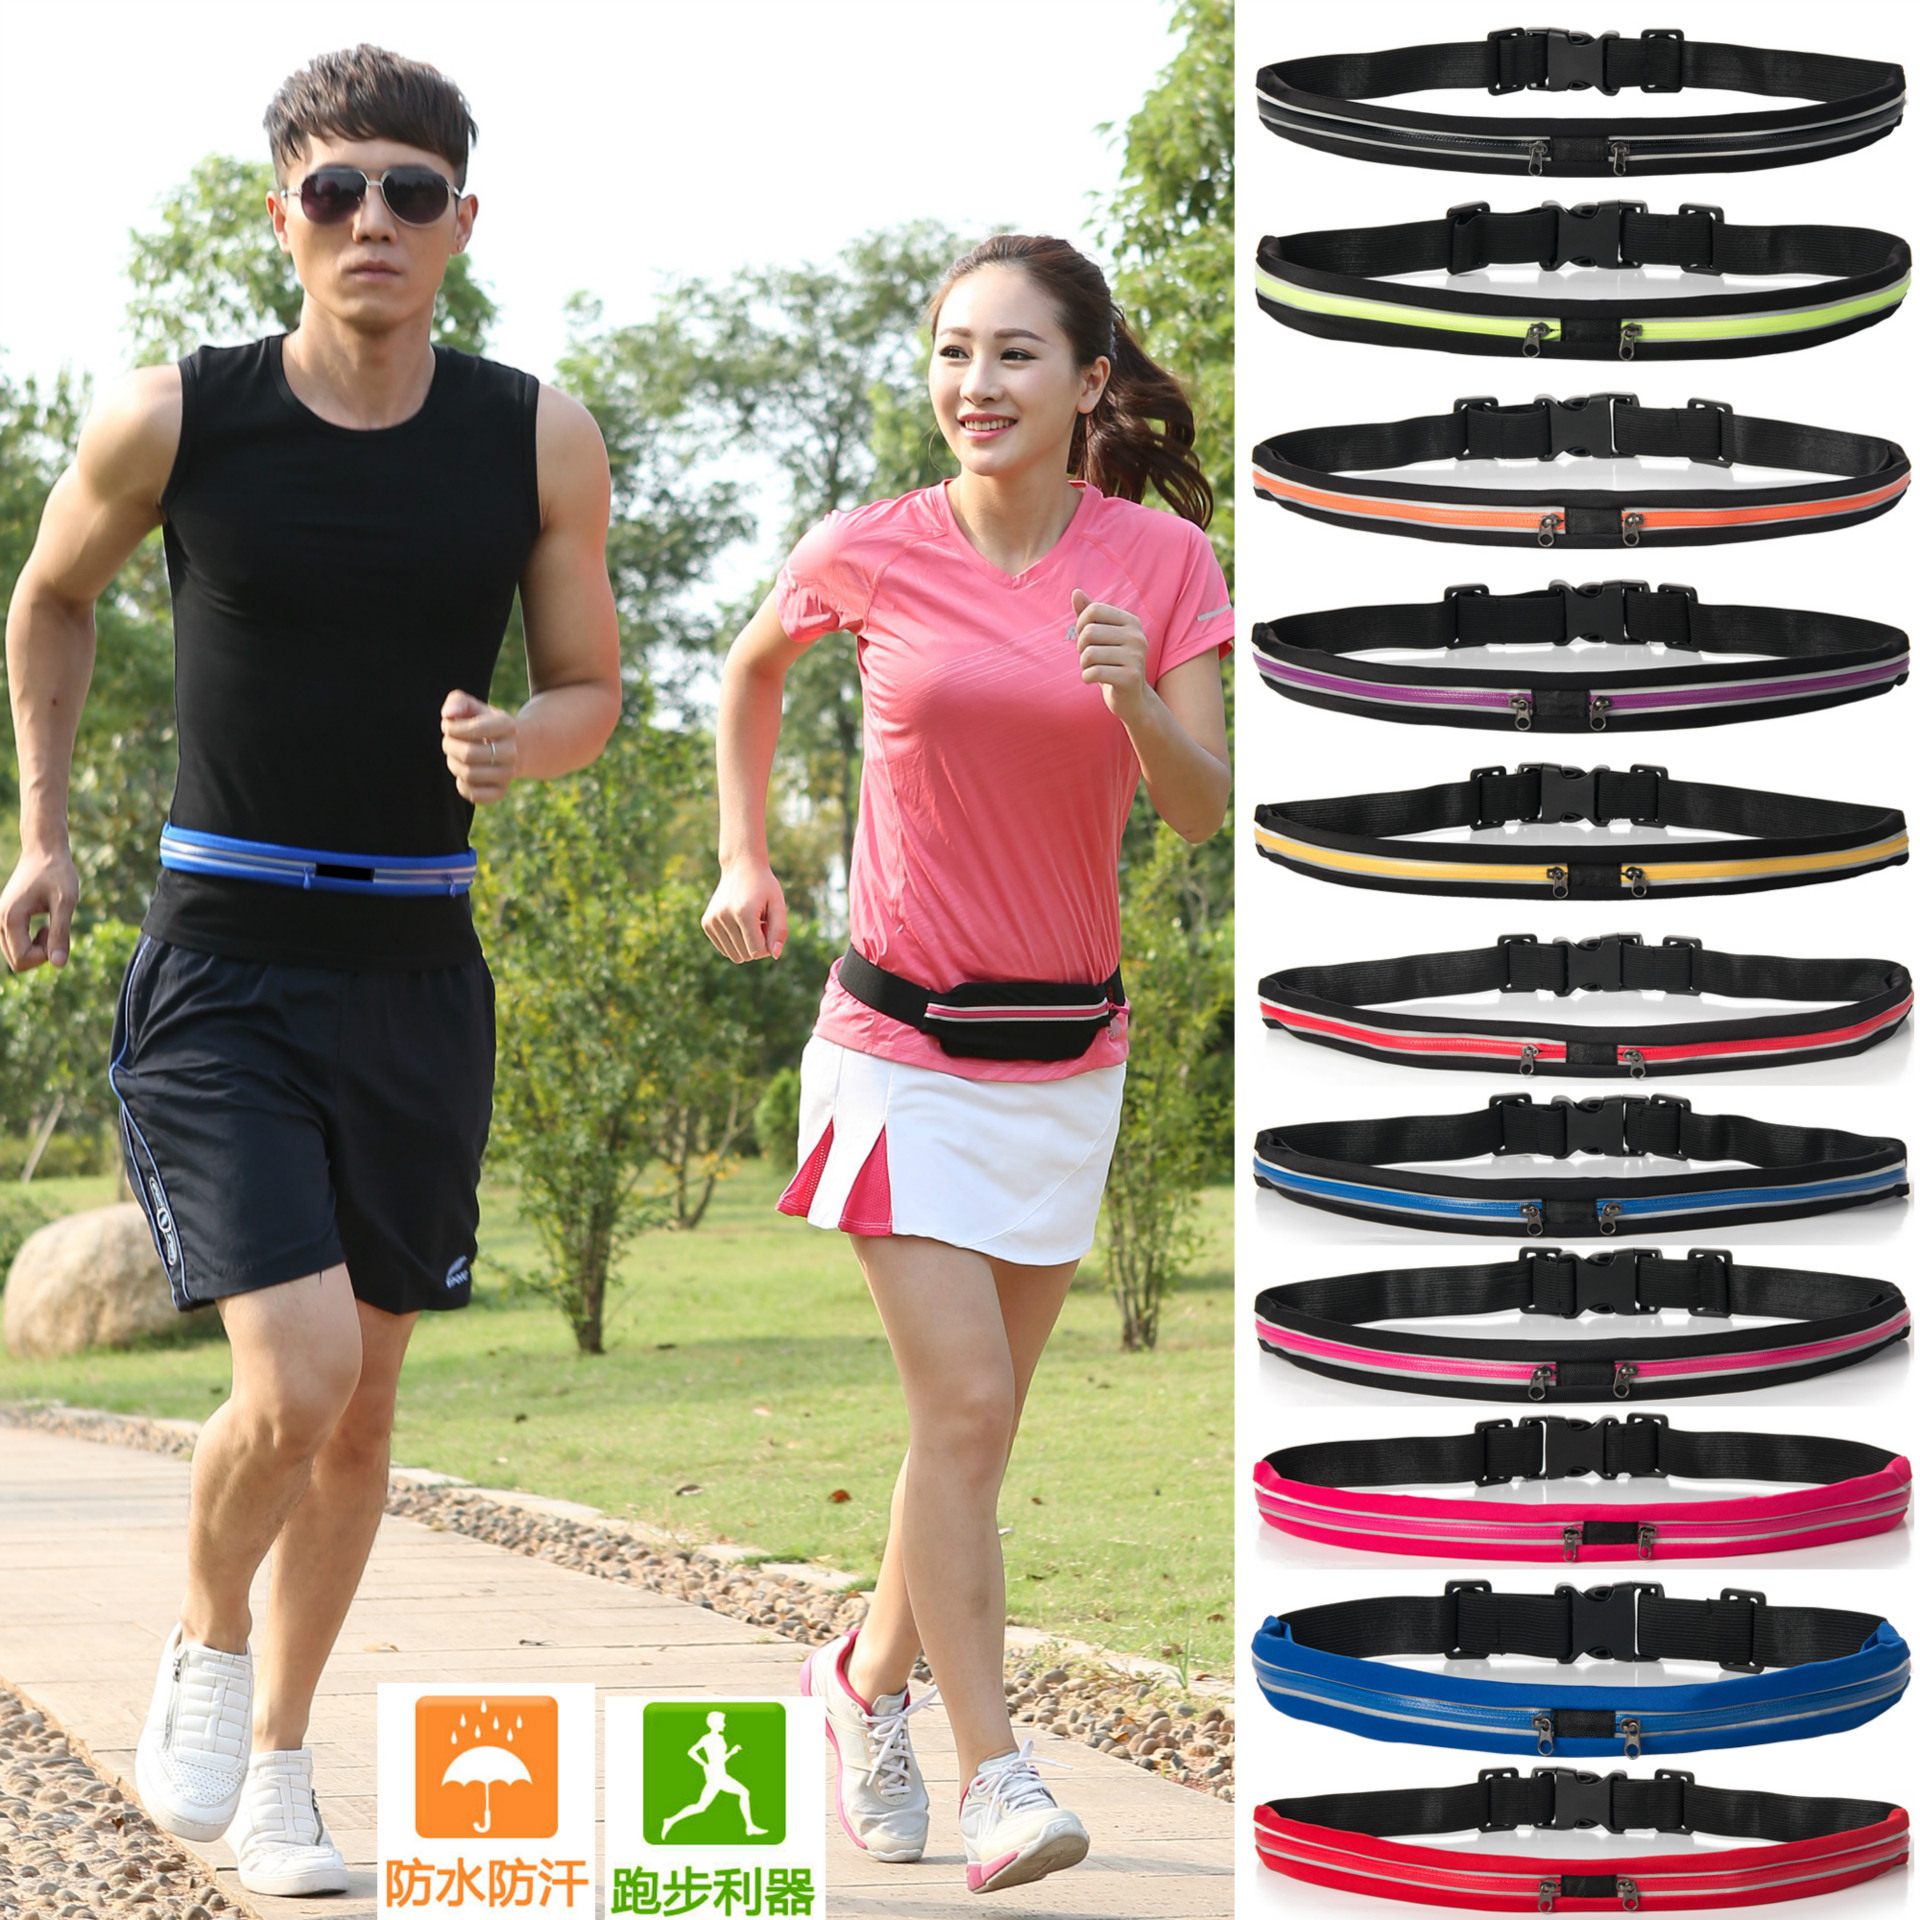 Outdoor stretch sports pockets Men and women fitness running cycling pockets Anti-theft waterproof mobile phone bag invisible belts